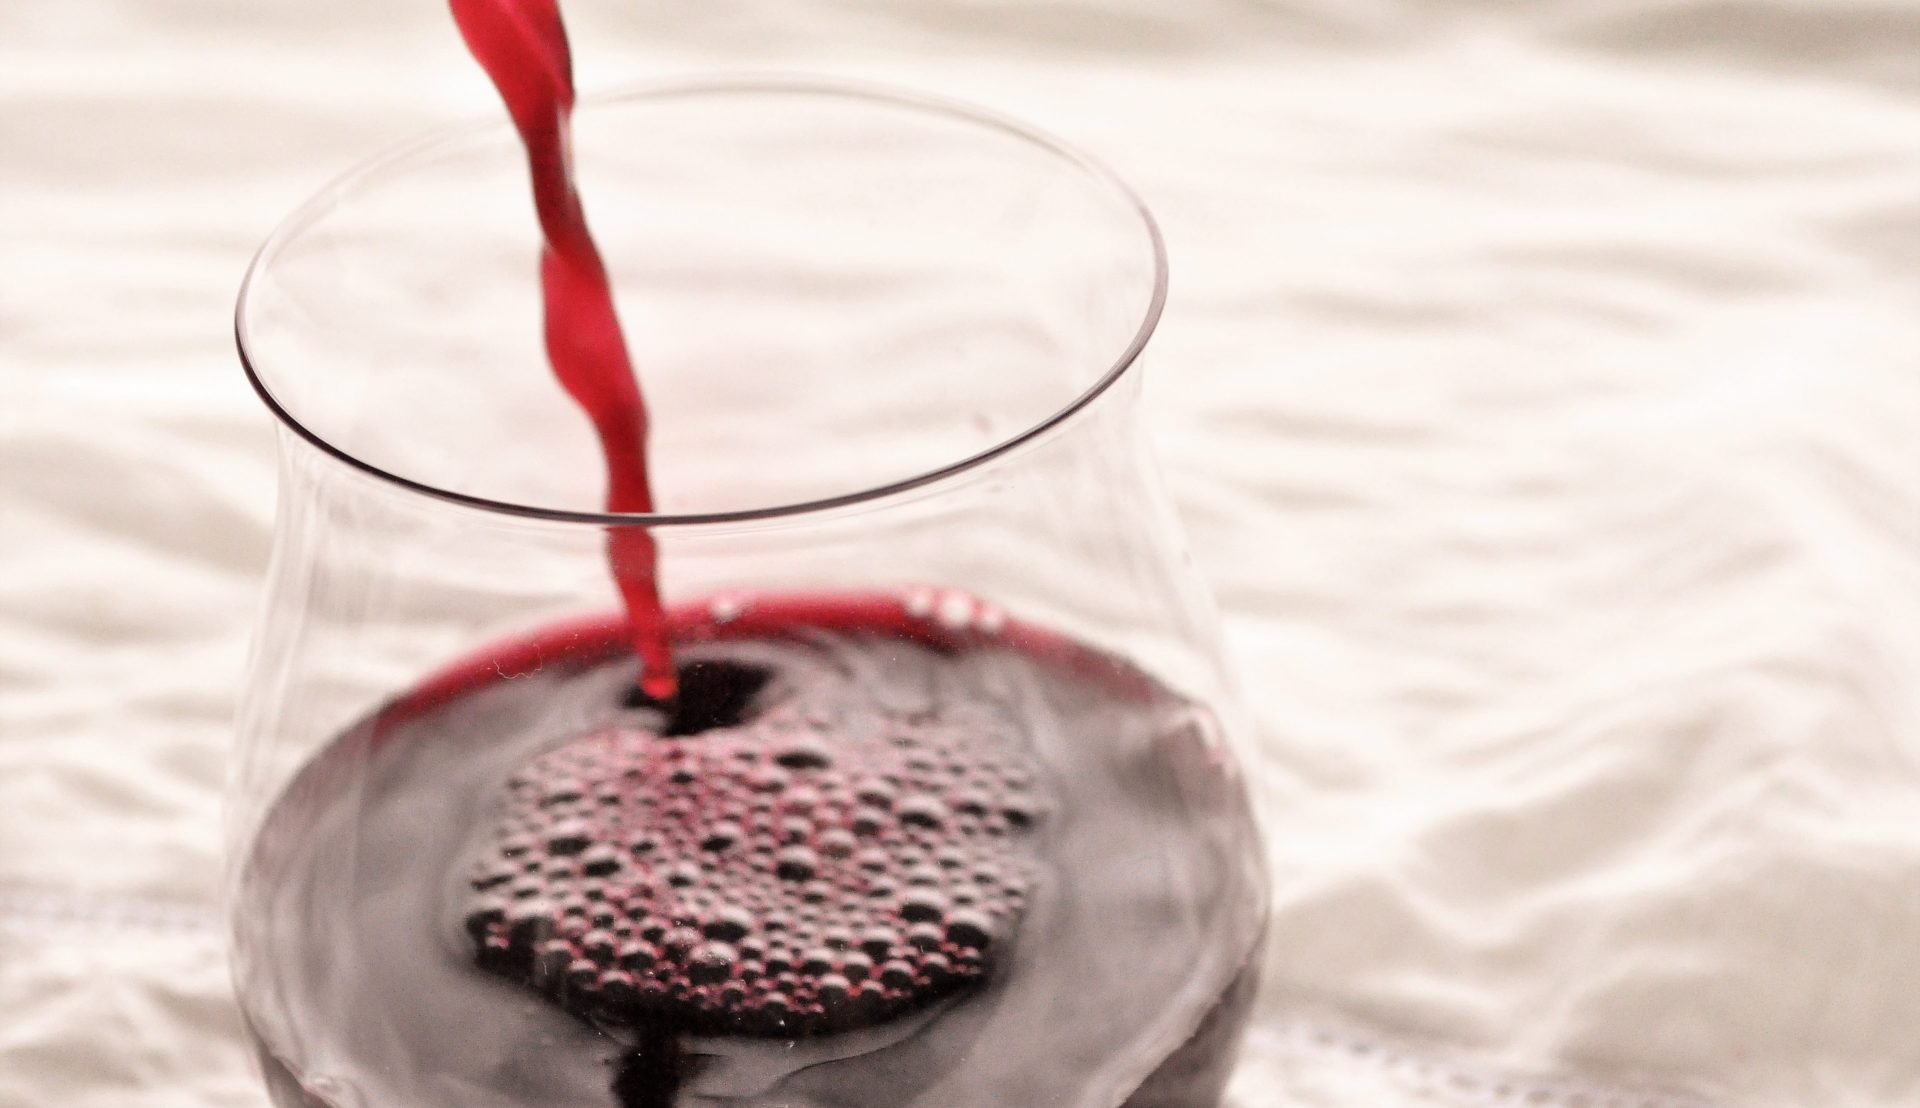 Enzyme for wine production